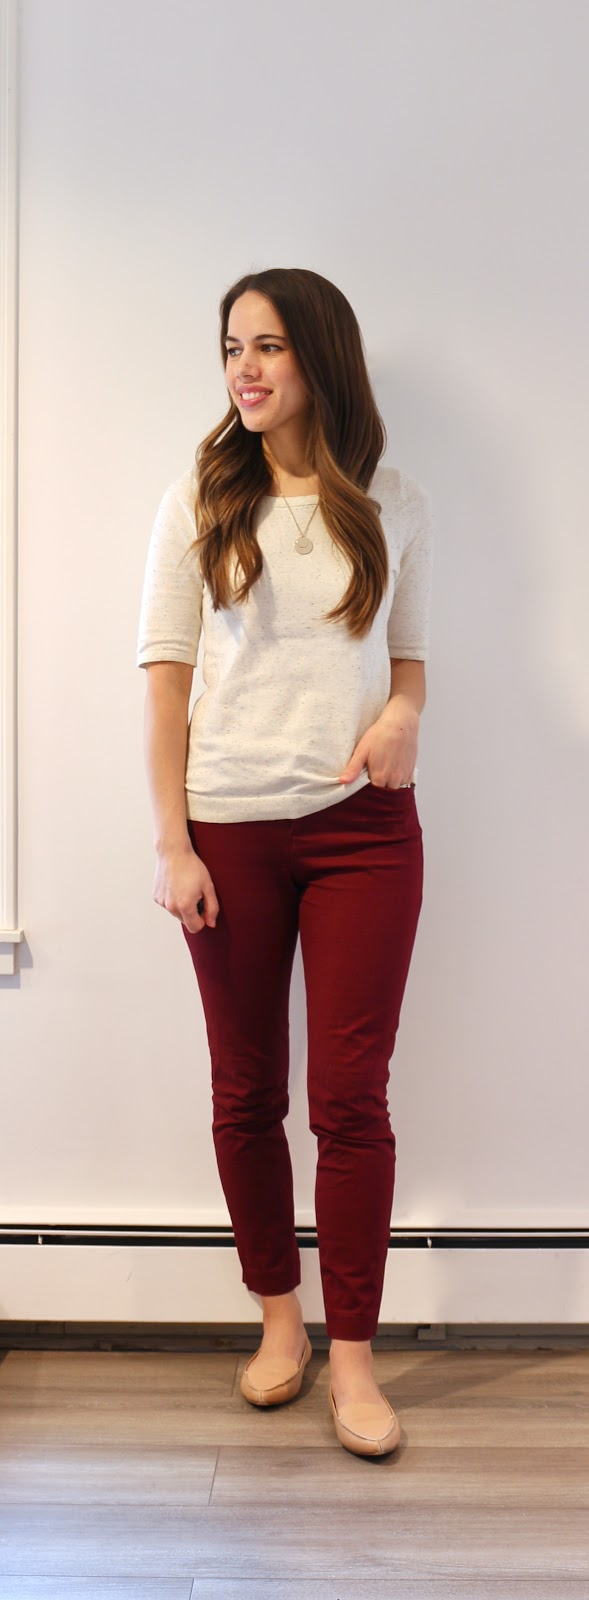 Jules in Flats - H&M Speckled Sweater & Burgundy Pixie Ankle Pants (Business Casual Workwear on a Budget)